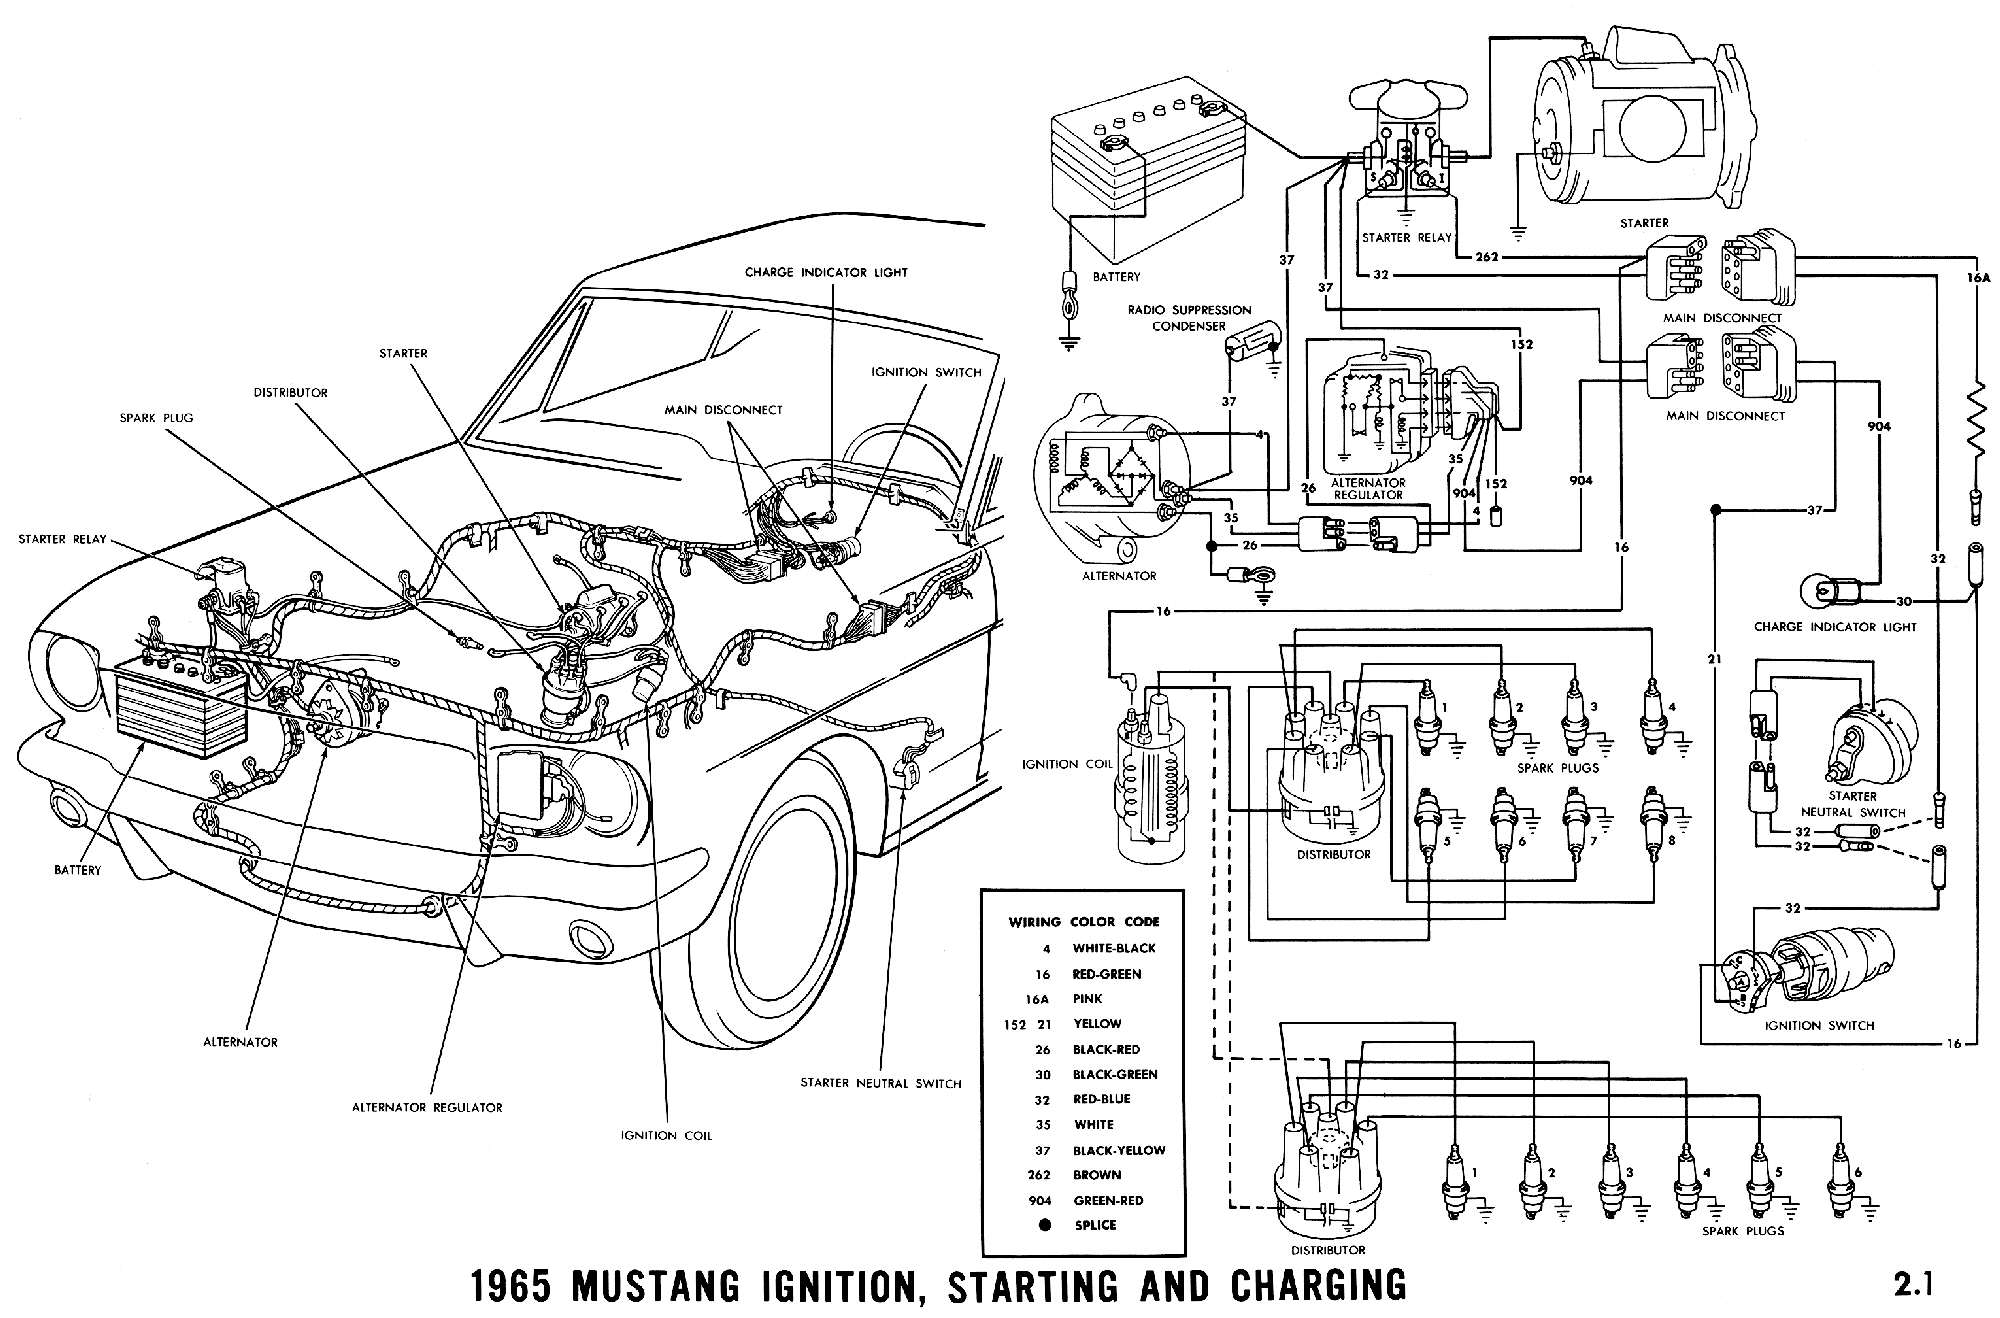 1965c 65 mustang dash wiring diagram 1965 ford mustang wiring diagram 2005 ford mustang instrument cluster wiring diagram at readyjetset.co